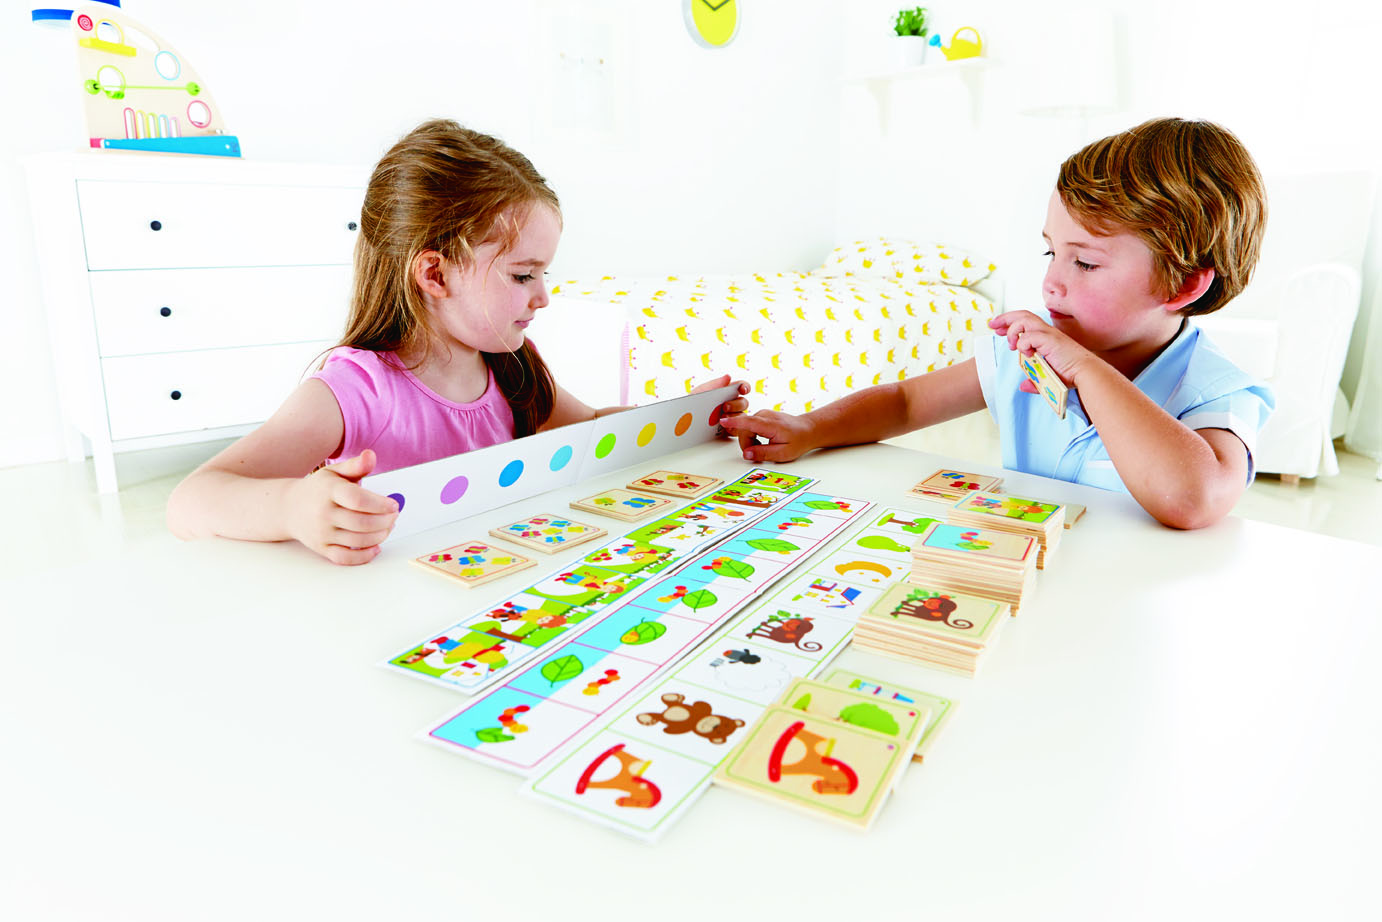 Listen to Clues game teaches descriptive language